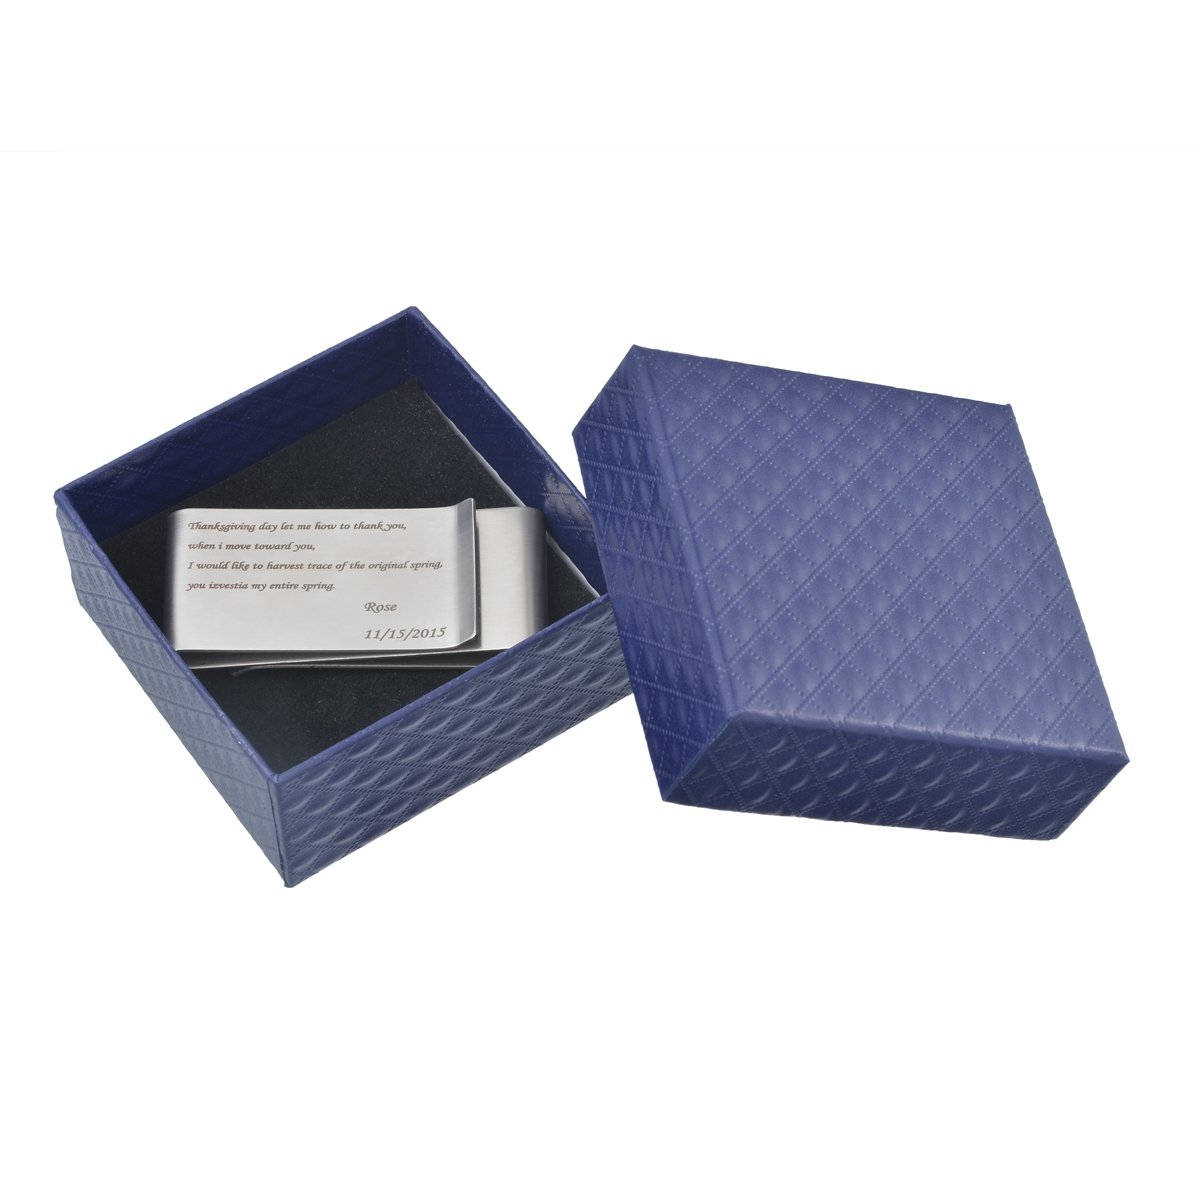 HooAMI Stainless Steel Double-Sided Smart Money Clip /& Credit Card Holder for Men BETY108355